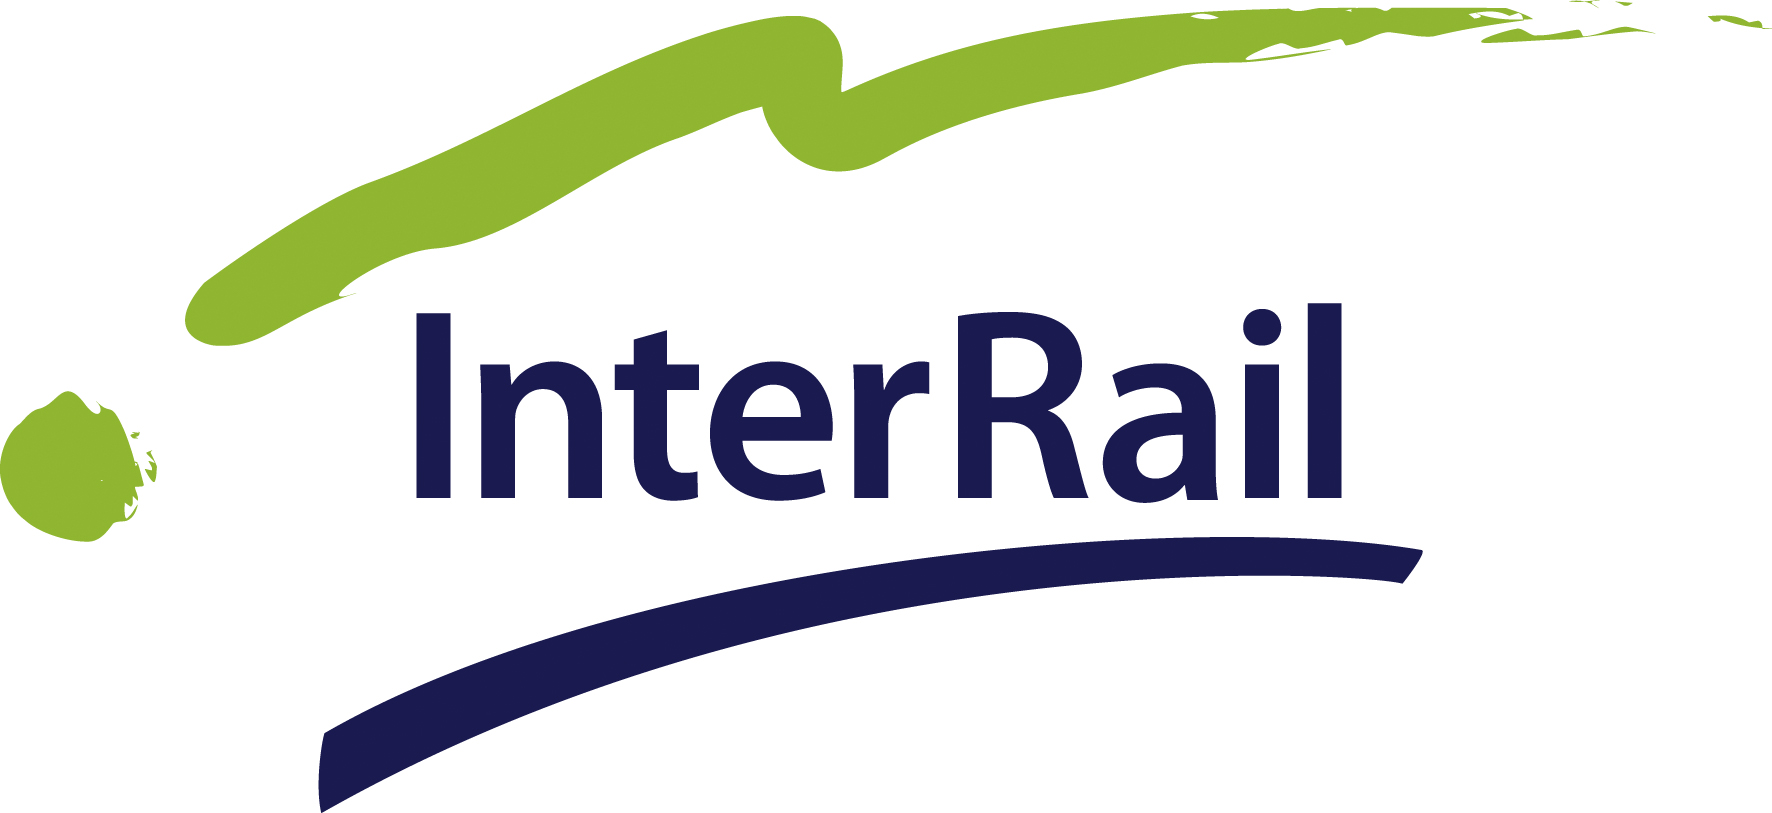 Read more about Interrail first class